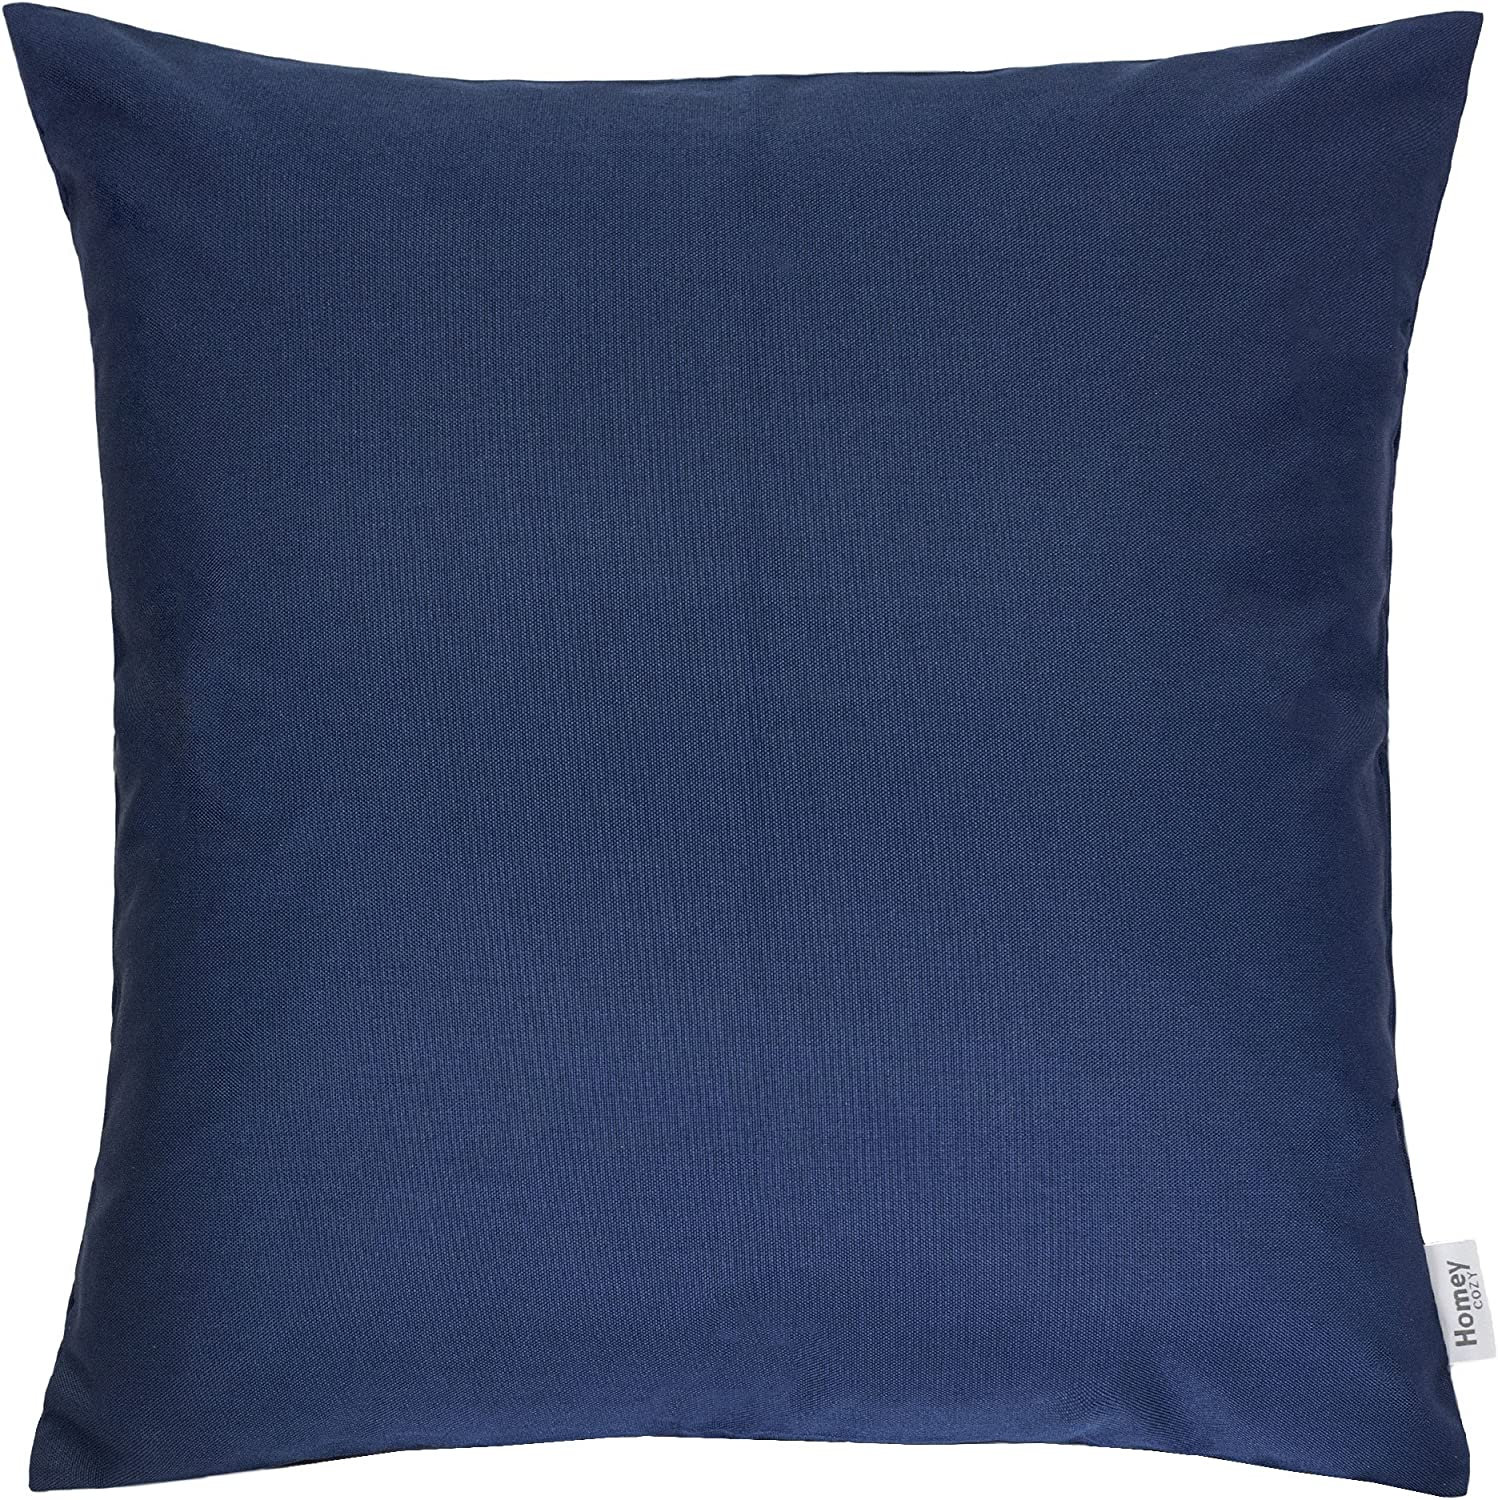 Homey COZY Outdoor Throw Pillow Cover, Classic Solid Navy Blue Large Pillow Sham Water UV Fade Stain-Resistance for Patio Lawn Couch Sofa Lounge 20×20, Cover Only